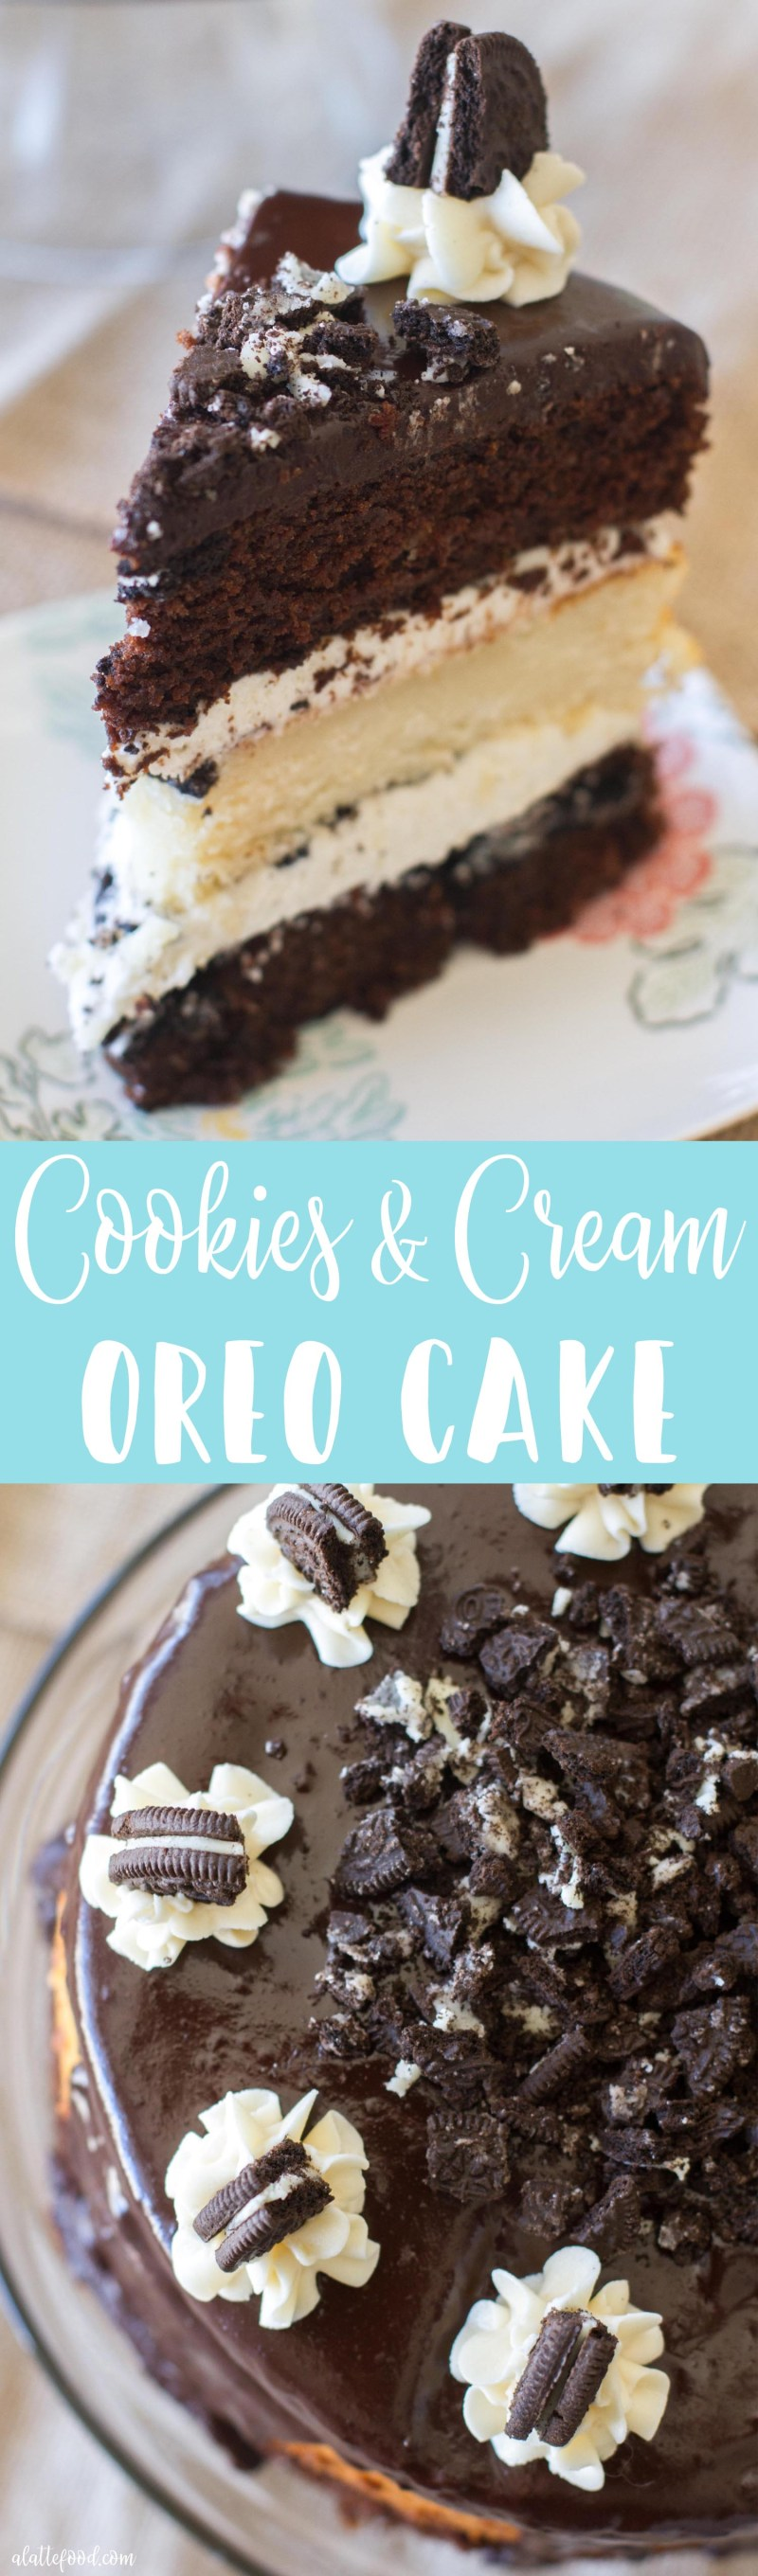 {Triple Layer} Cookies and Cream Oreo Cake: Layers of chocolate and vanilla cake are filled with vanilla frosting, crushed Oreos, and topped with a chocolate ganache. Oh, and each layer has Oreos baked right in. Whoa.